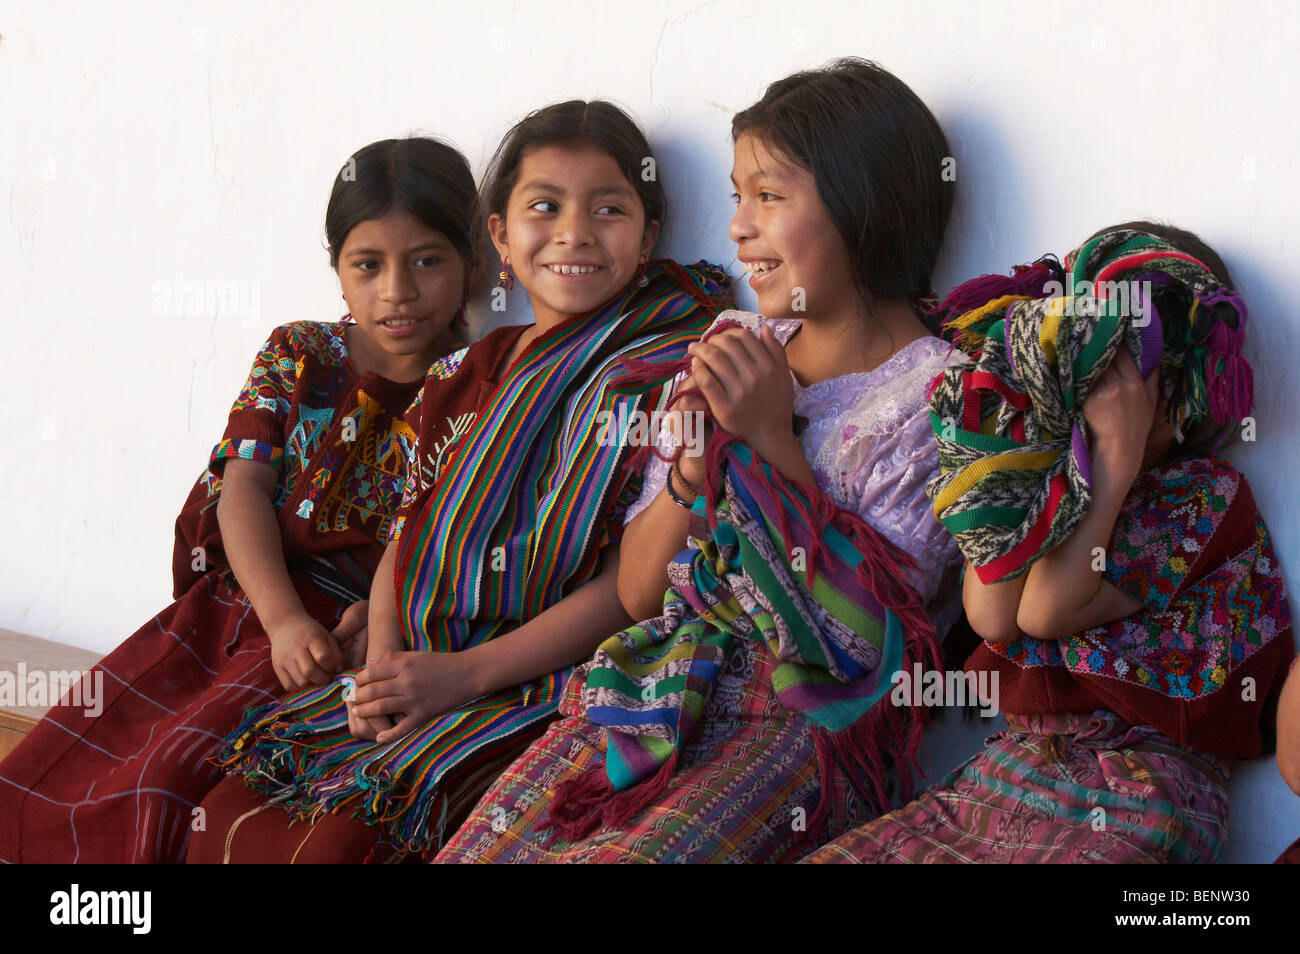 an indian woman in guatemala Single women are searching for single women in guatemala and now you can do it with doulike, an awesome online dating personal service join us and see lots of interesting people located in guatemala and find the person for you with doulike all the benefits of online dating are now gathered in the one perfect place.